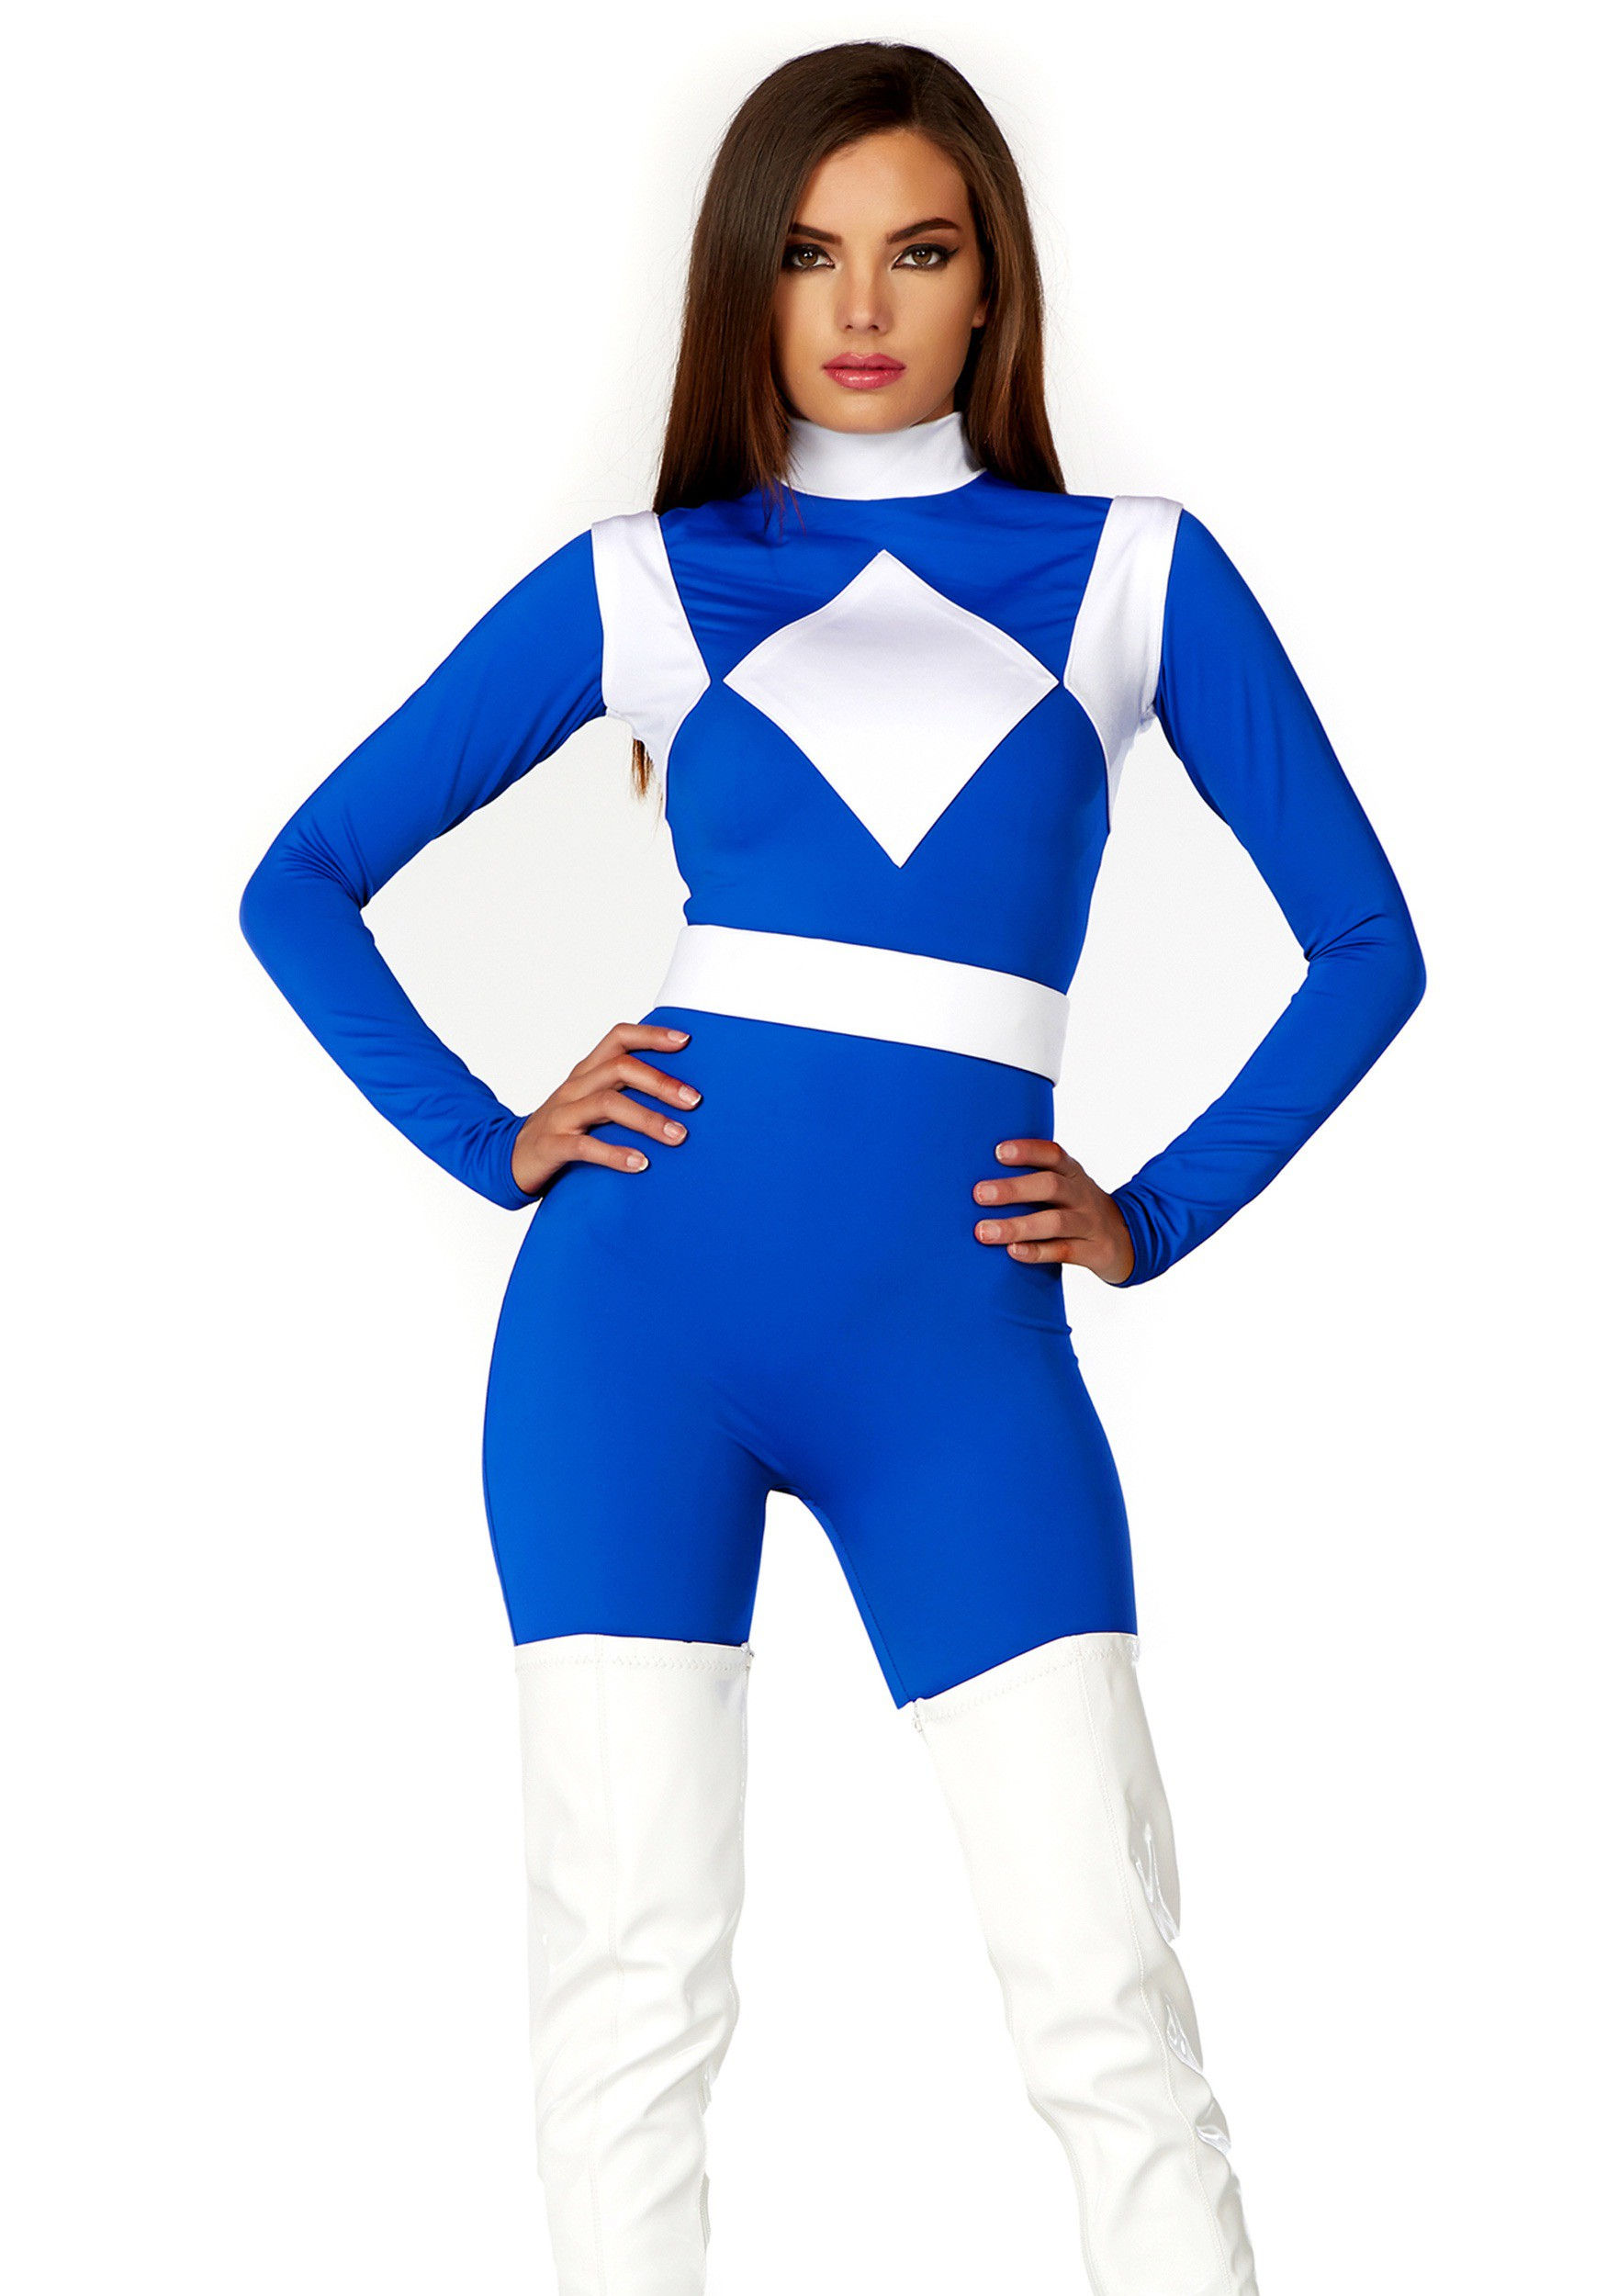 Women's Dominance Action Figure Blue Catsuit